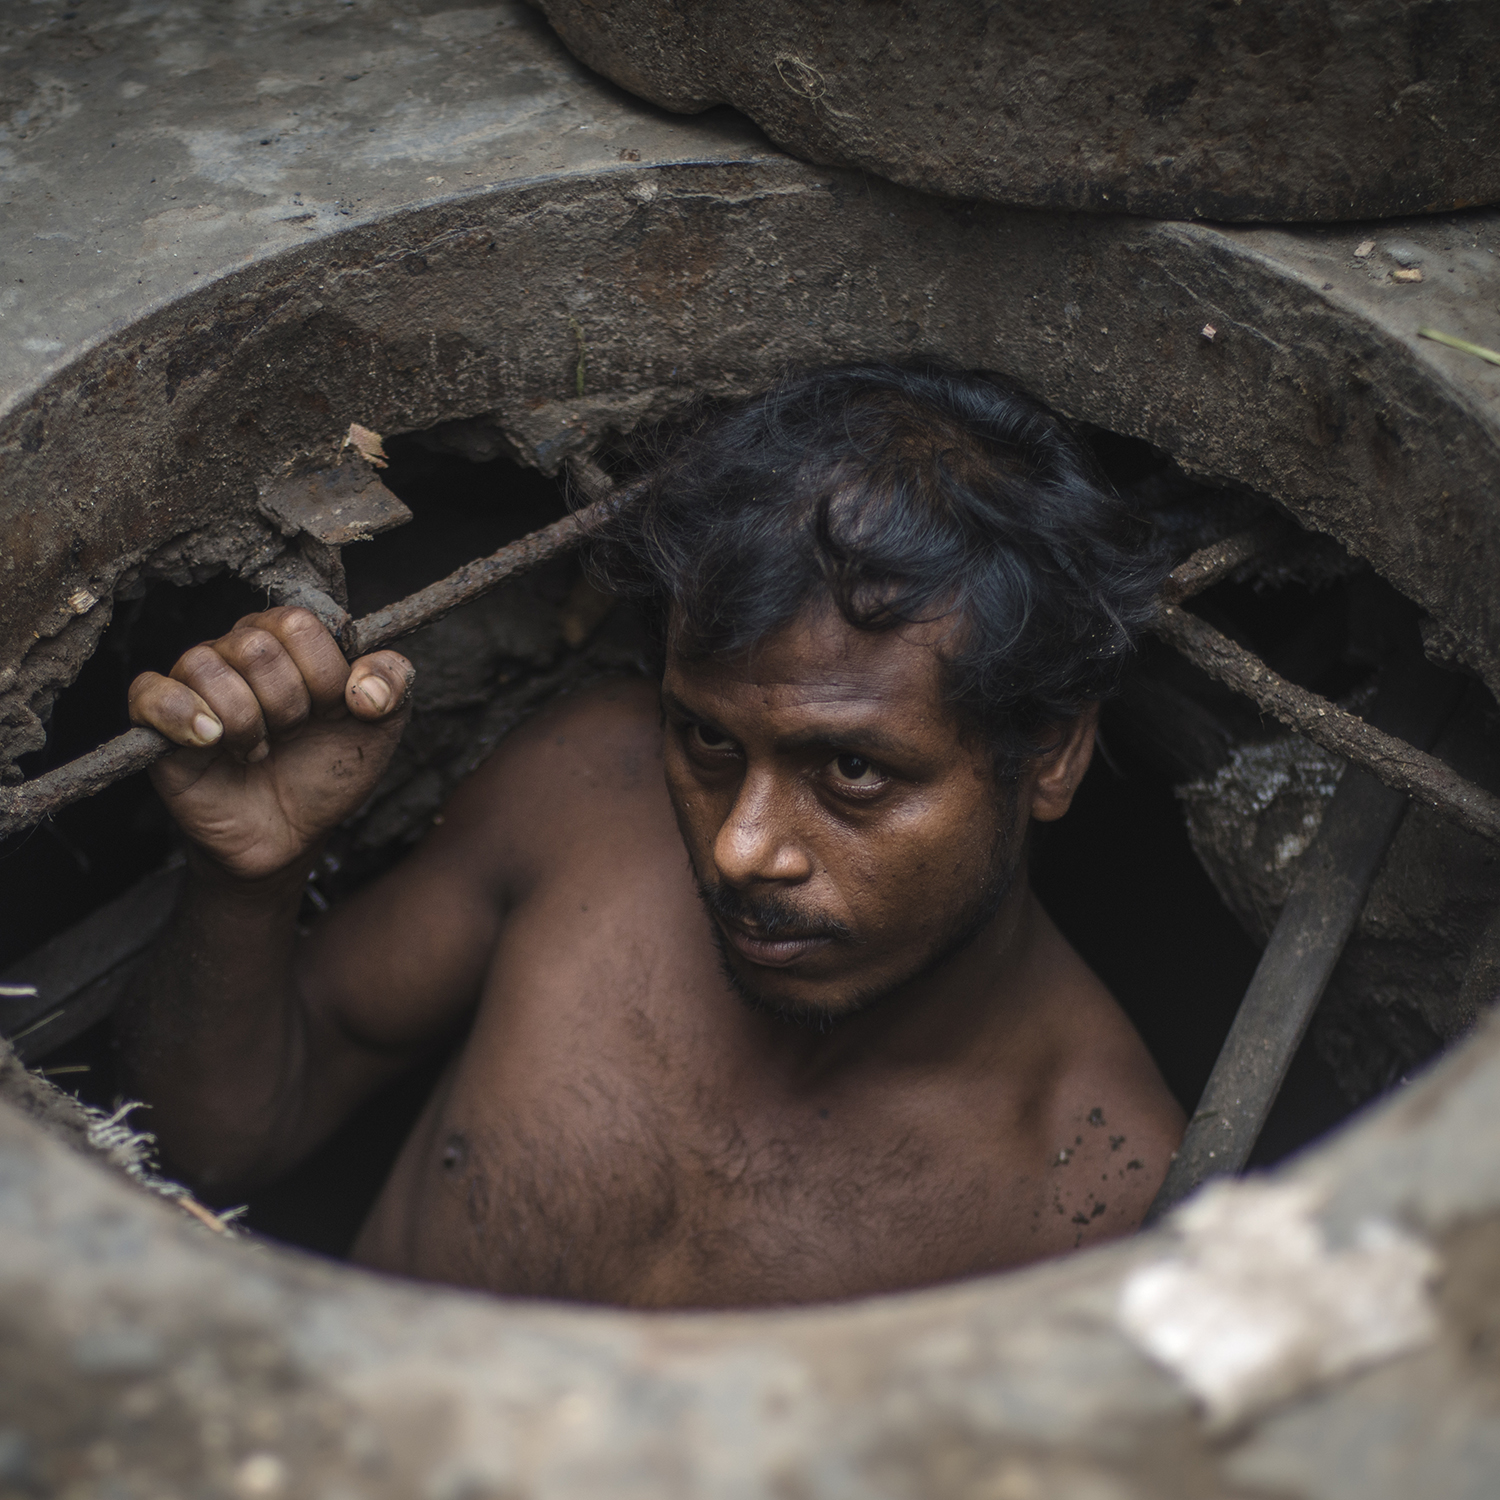 INDIA'S MANUAL SCAVENGERS